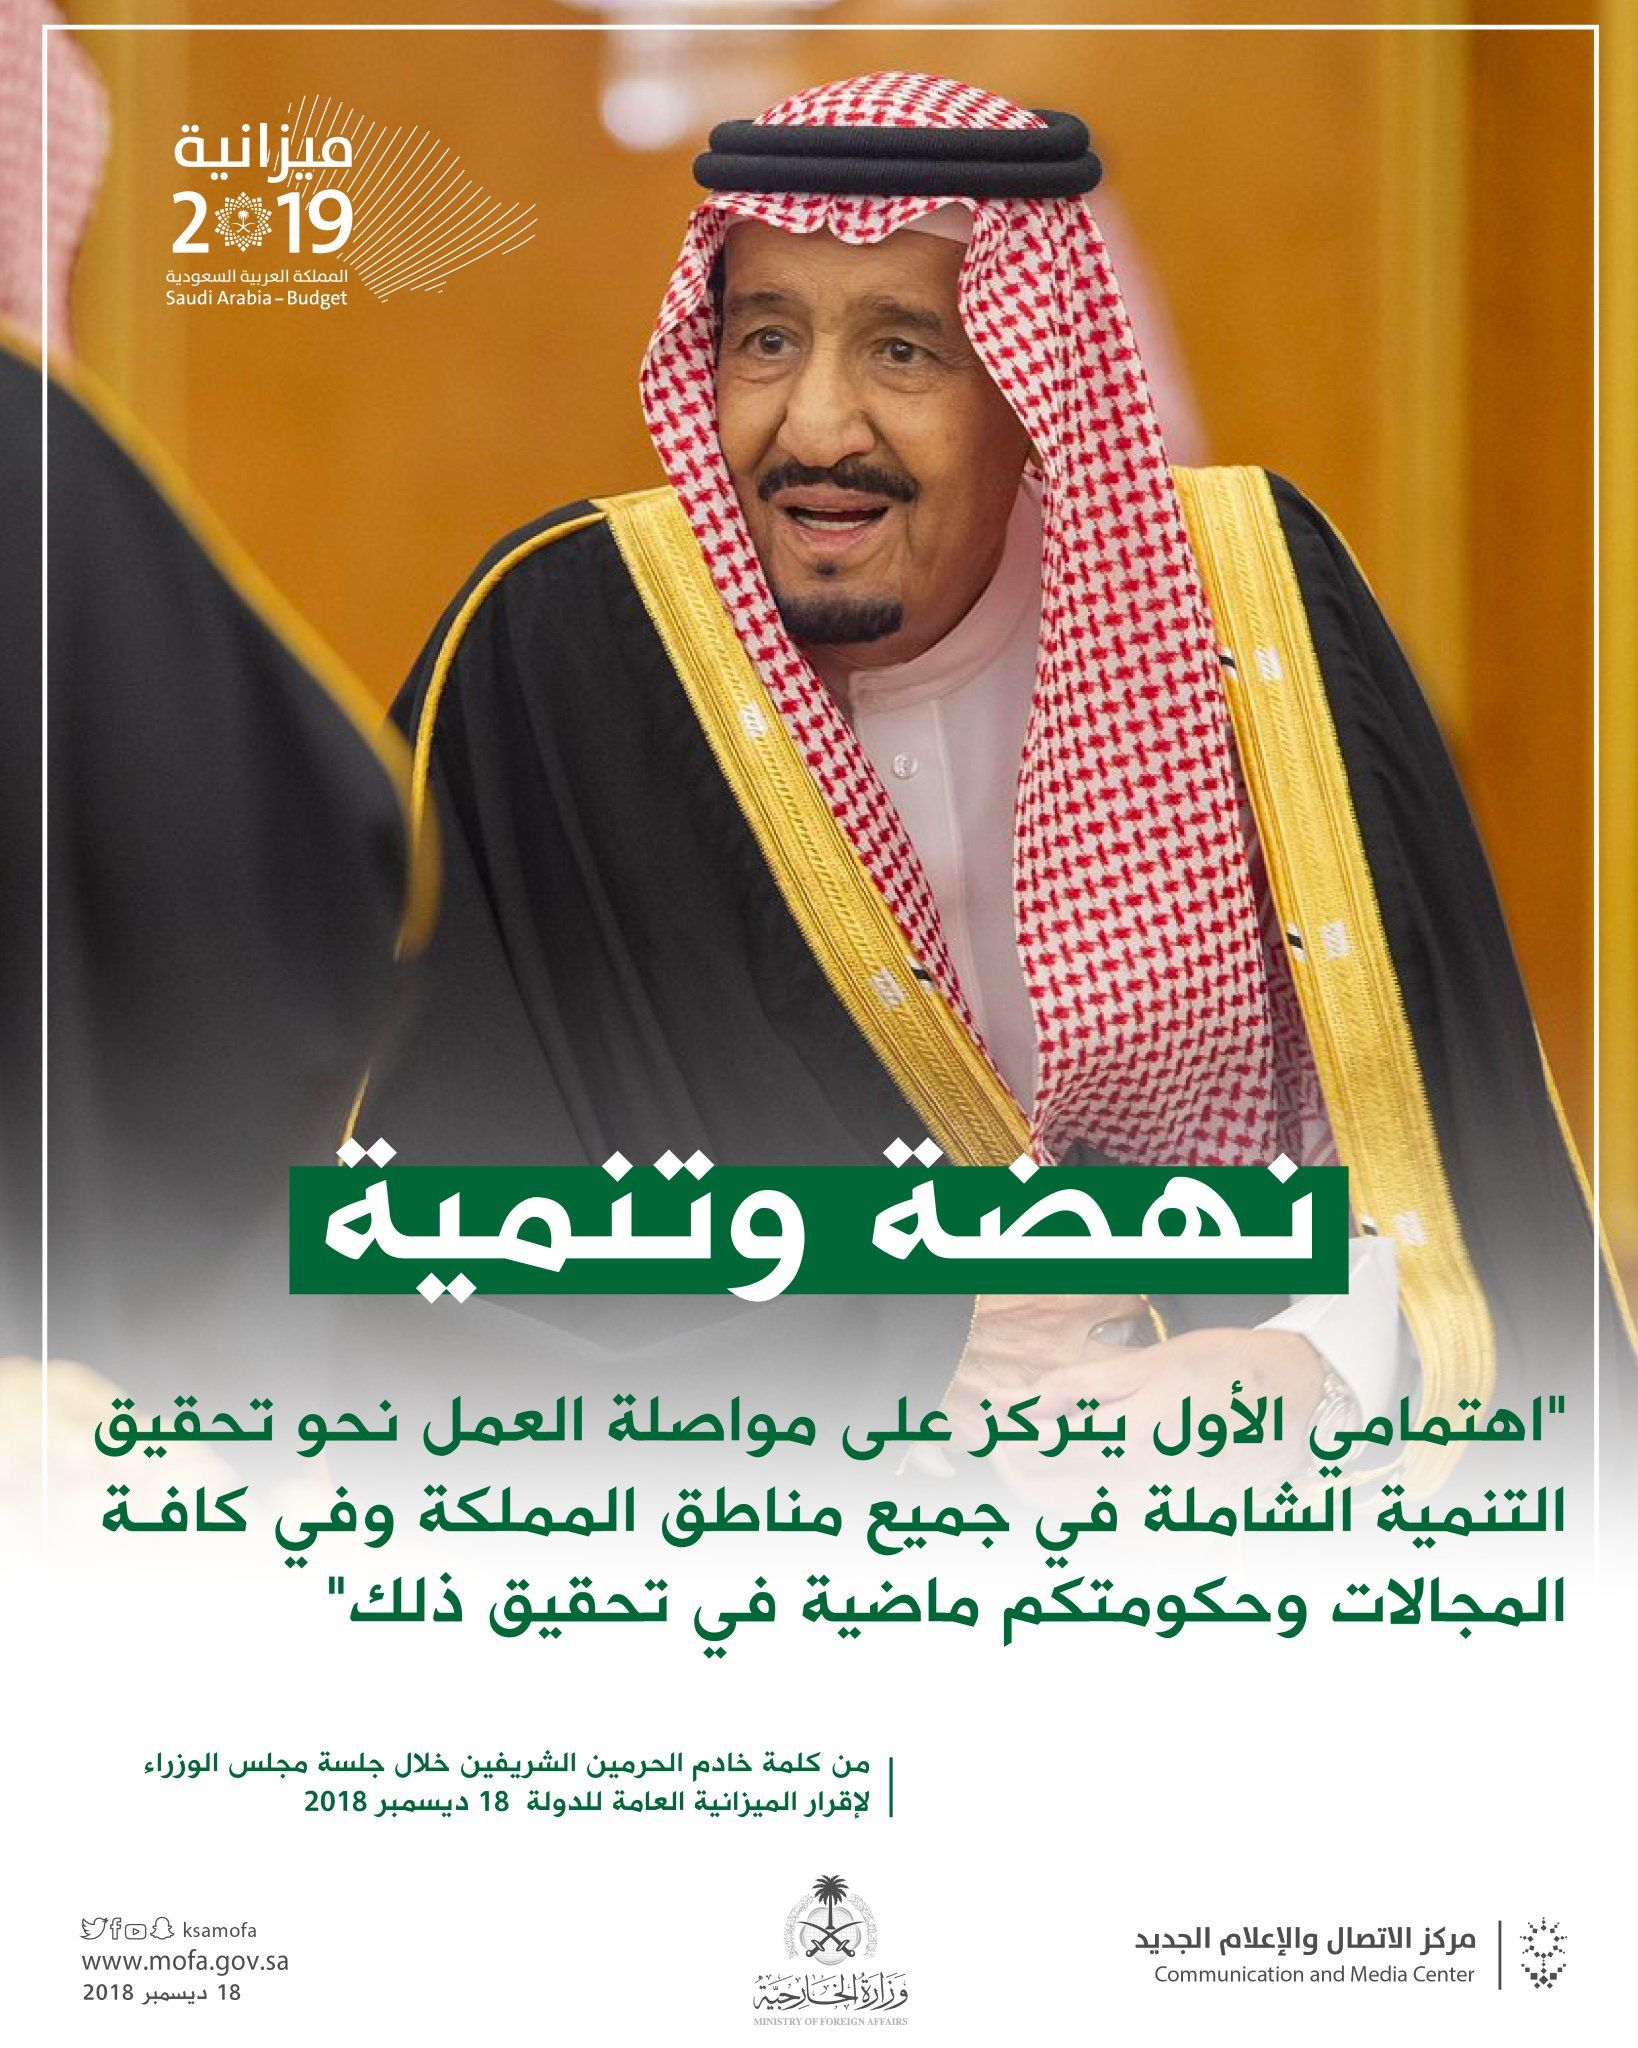 ميزانية السعودية 2019 السعودية National Day Saudi King Salman Saudi Arabia Prince Mohammed